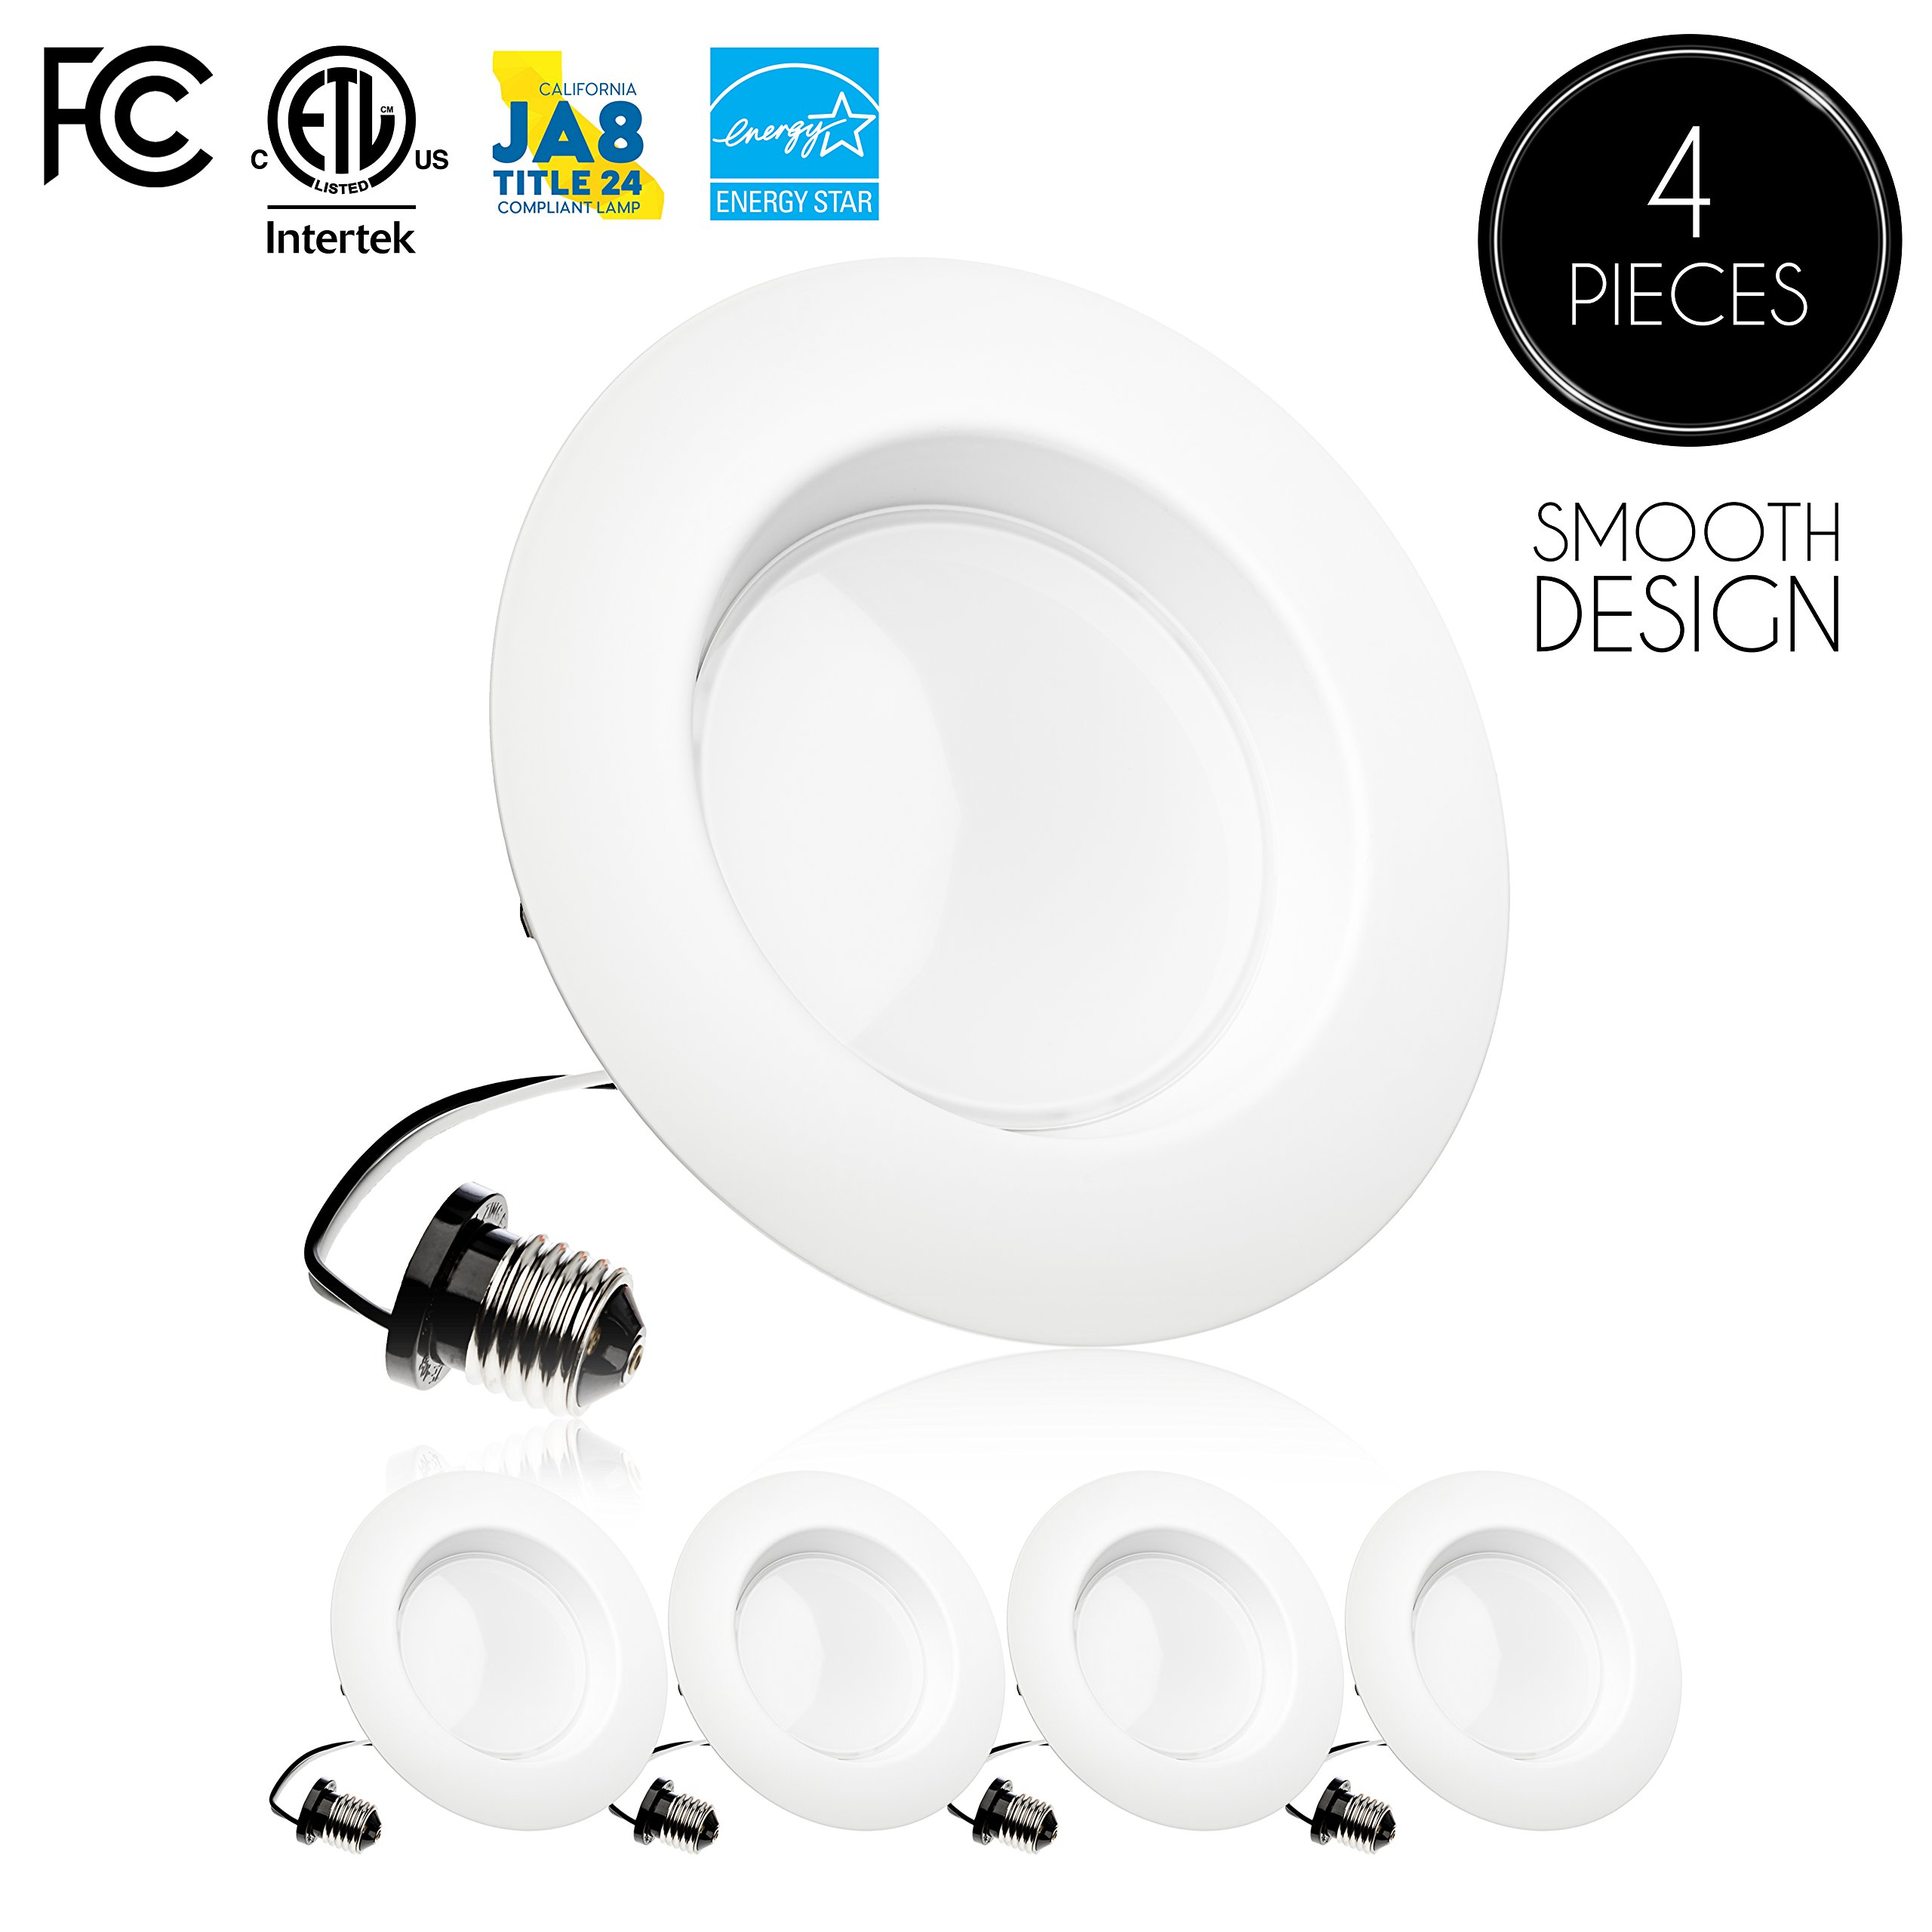 Parmida (4 Pack) 5/6 inch Dimmable LED Downlight, 15W (120W Replacement),EASY INSTALLATION, Retrofit LED Recessed Lighting Fixture, 3000K (Soft White), 1100Lm, ENERGY STAR & ETL, LED Ceiling Can Light